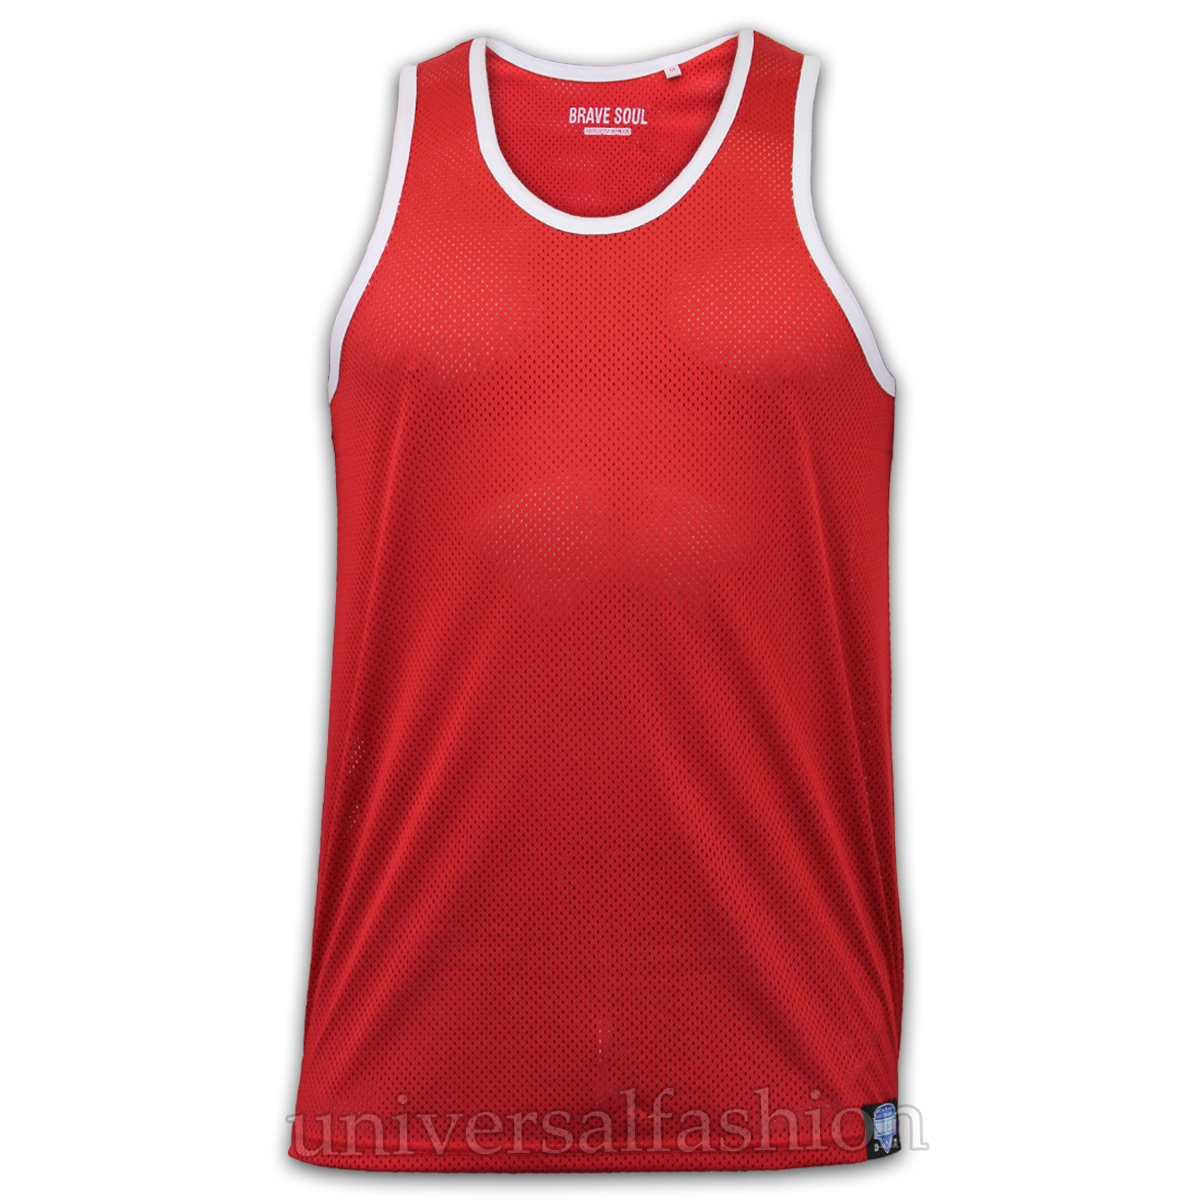 View all mens clothing Our Men's vests are great for wearing down the gym or during training. We have a variety of different fits, brands and styles of vests to choose from including tank tops so you'll be able to look and feel great. To complete the look, take a look at our men's gym clothing.